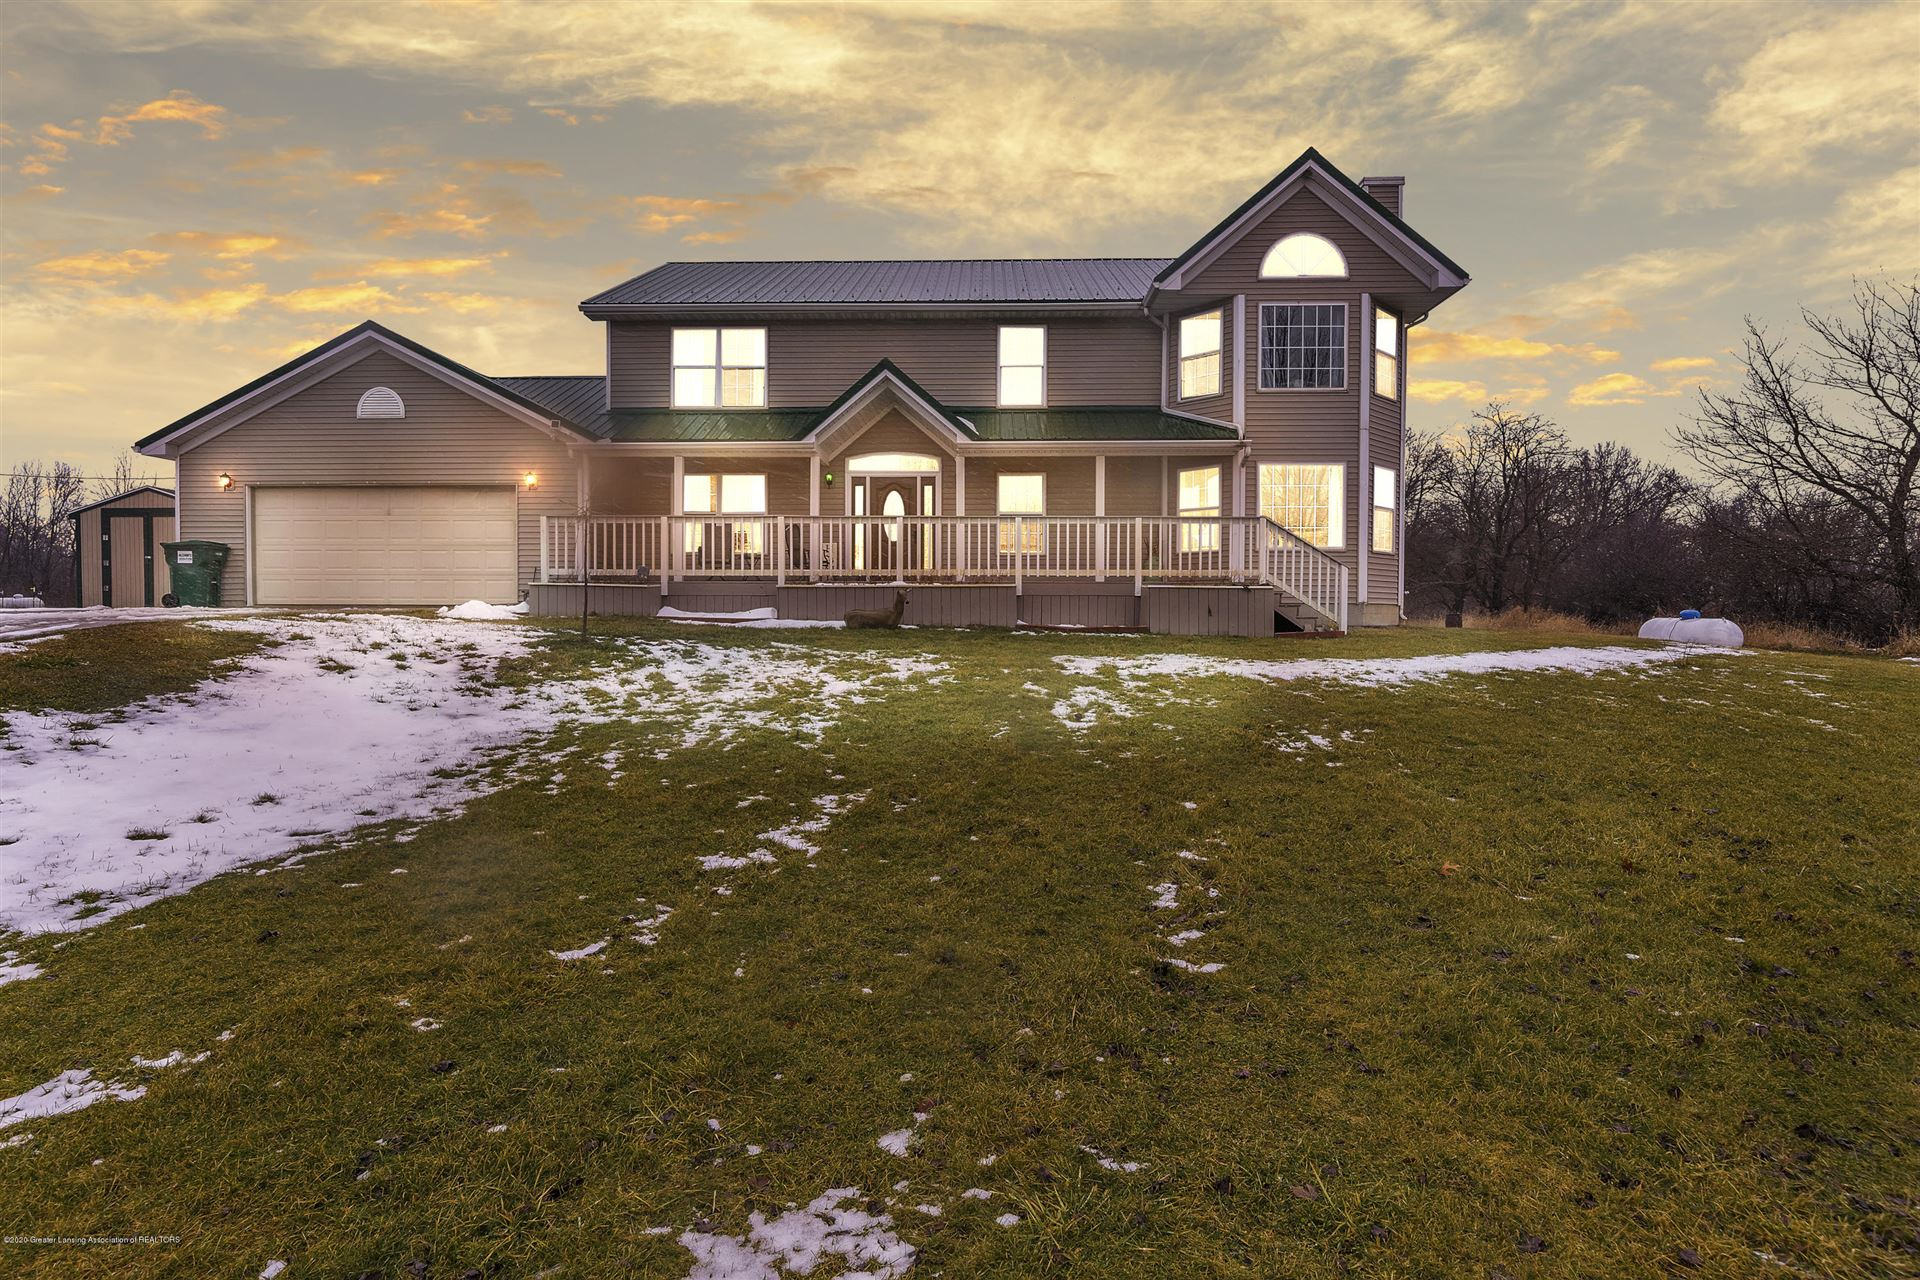 Photo of 2471 E Braden Road, Perry, MI 48872 (MLS # 243794)